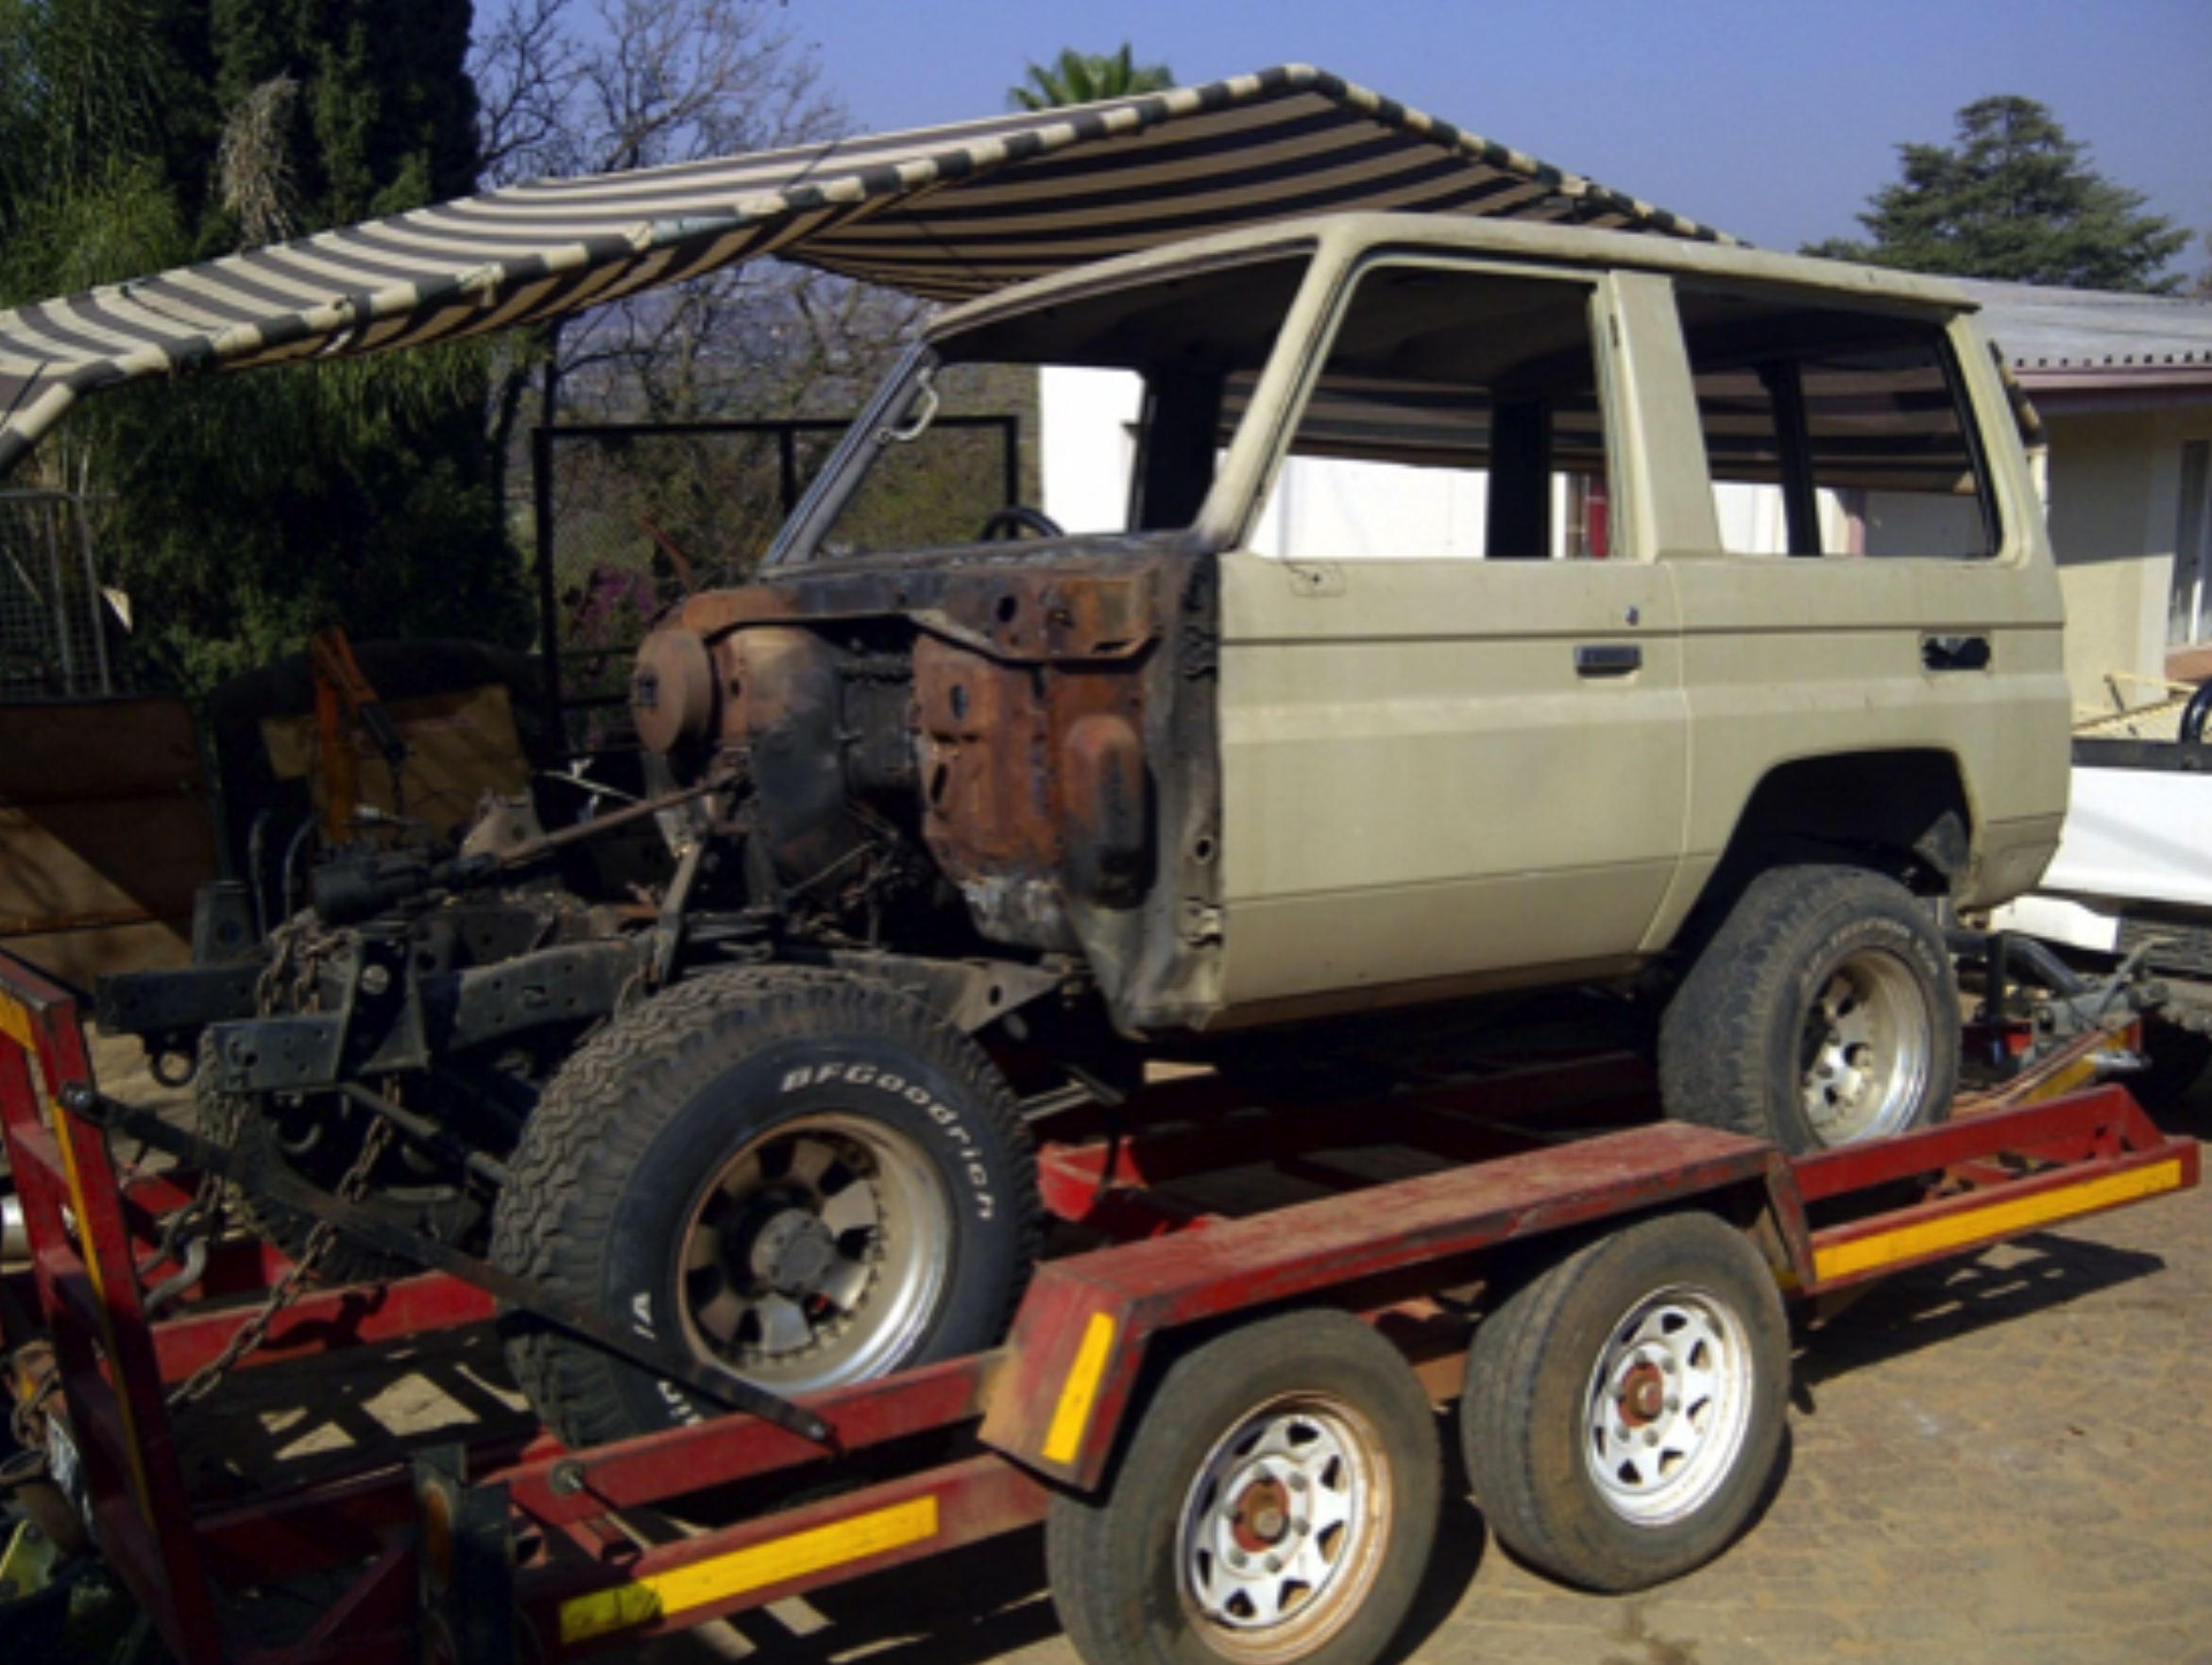 Team Kwagga 13 14 Zfactor 1960 Toyota Land Cruiser Fuse Box The Start Of A Partially Burnt Out 1993 Lj71 17 August 2012